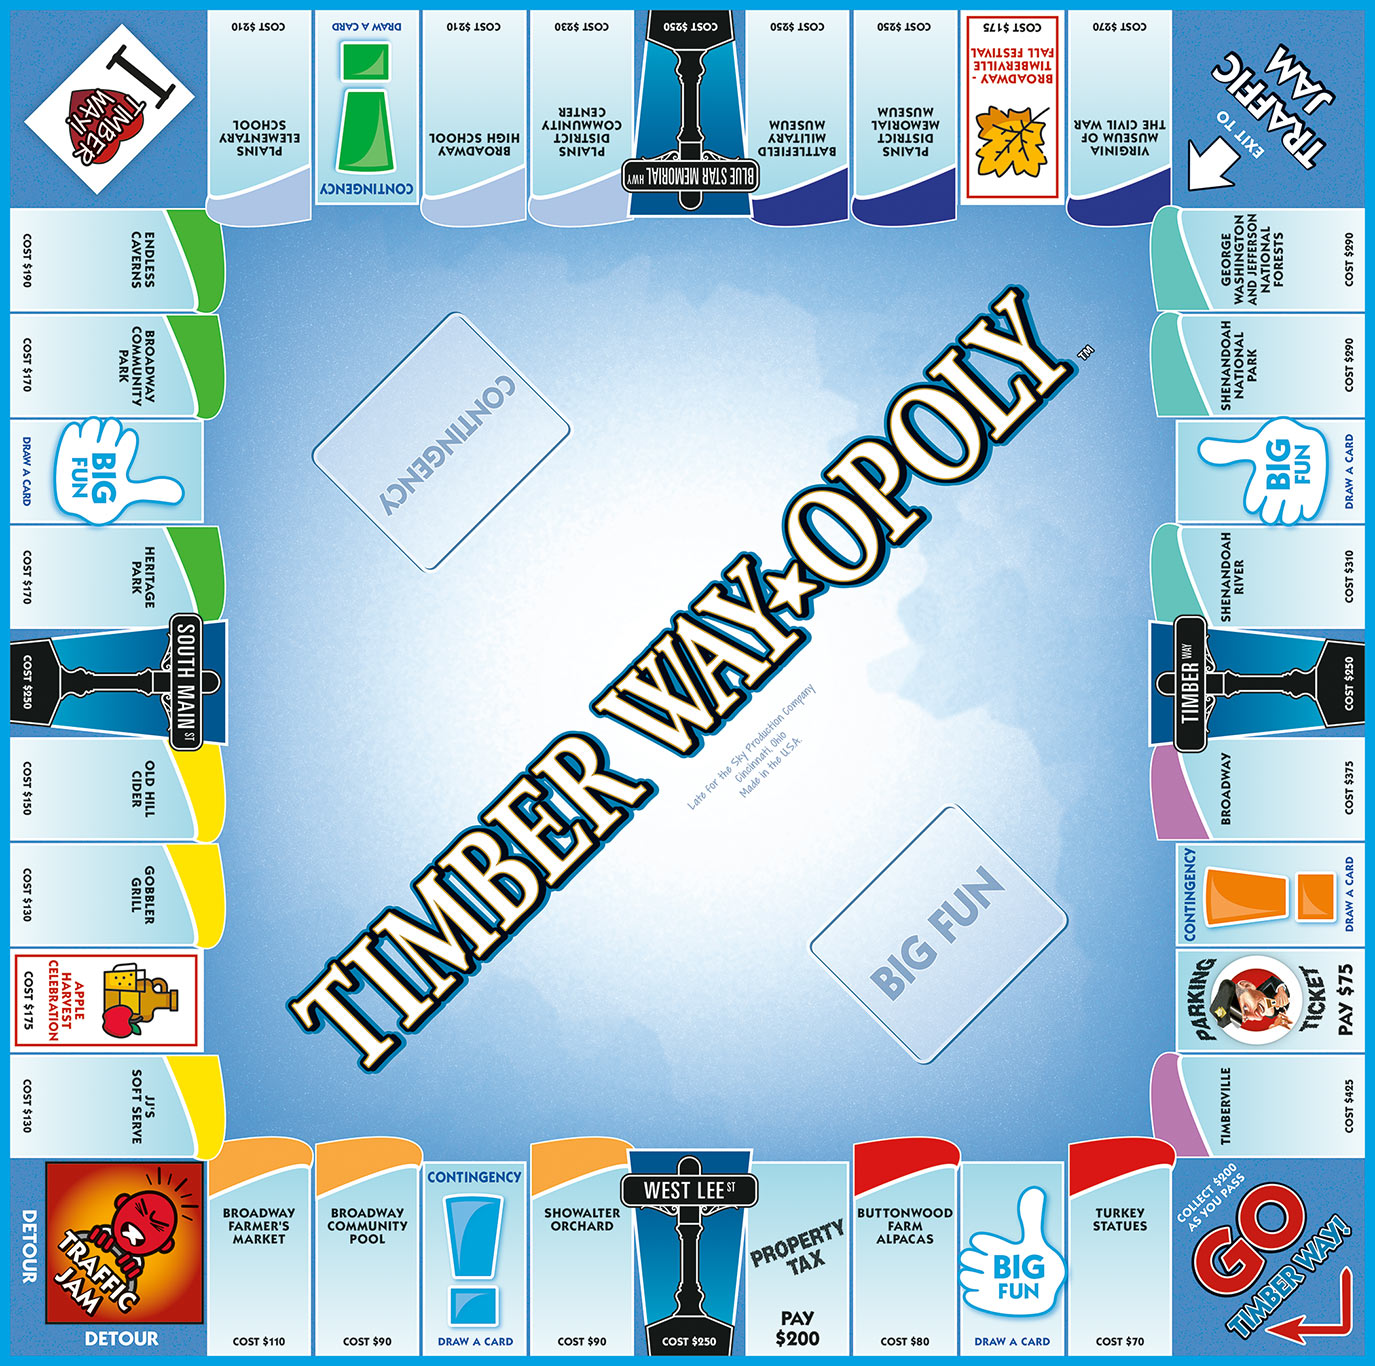 TIMBERWAY-OPOLY Board Game